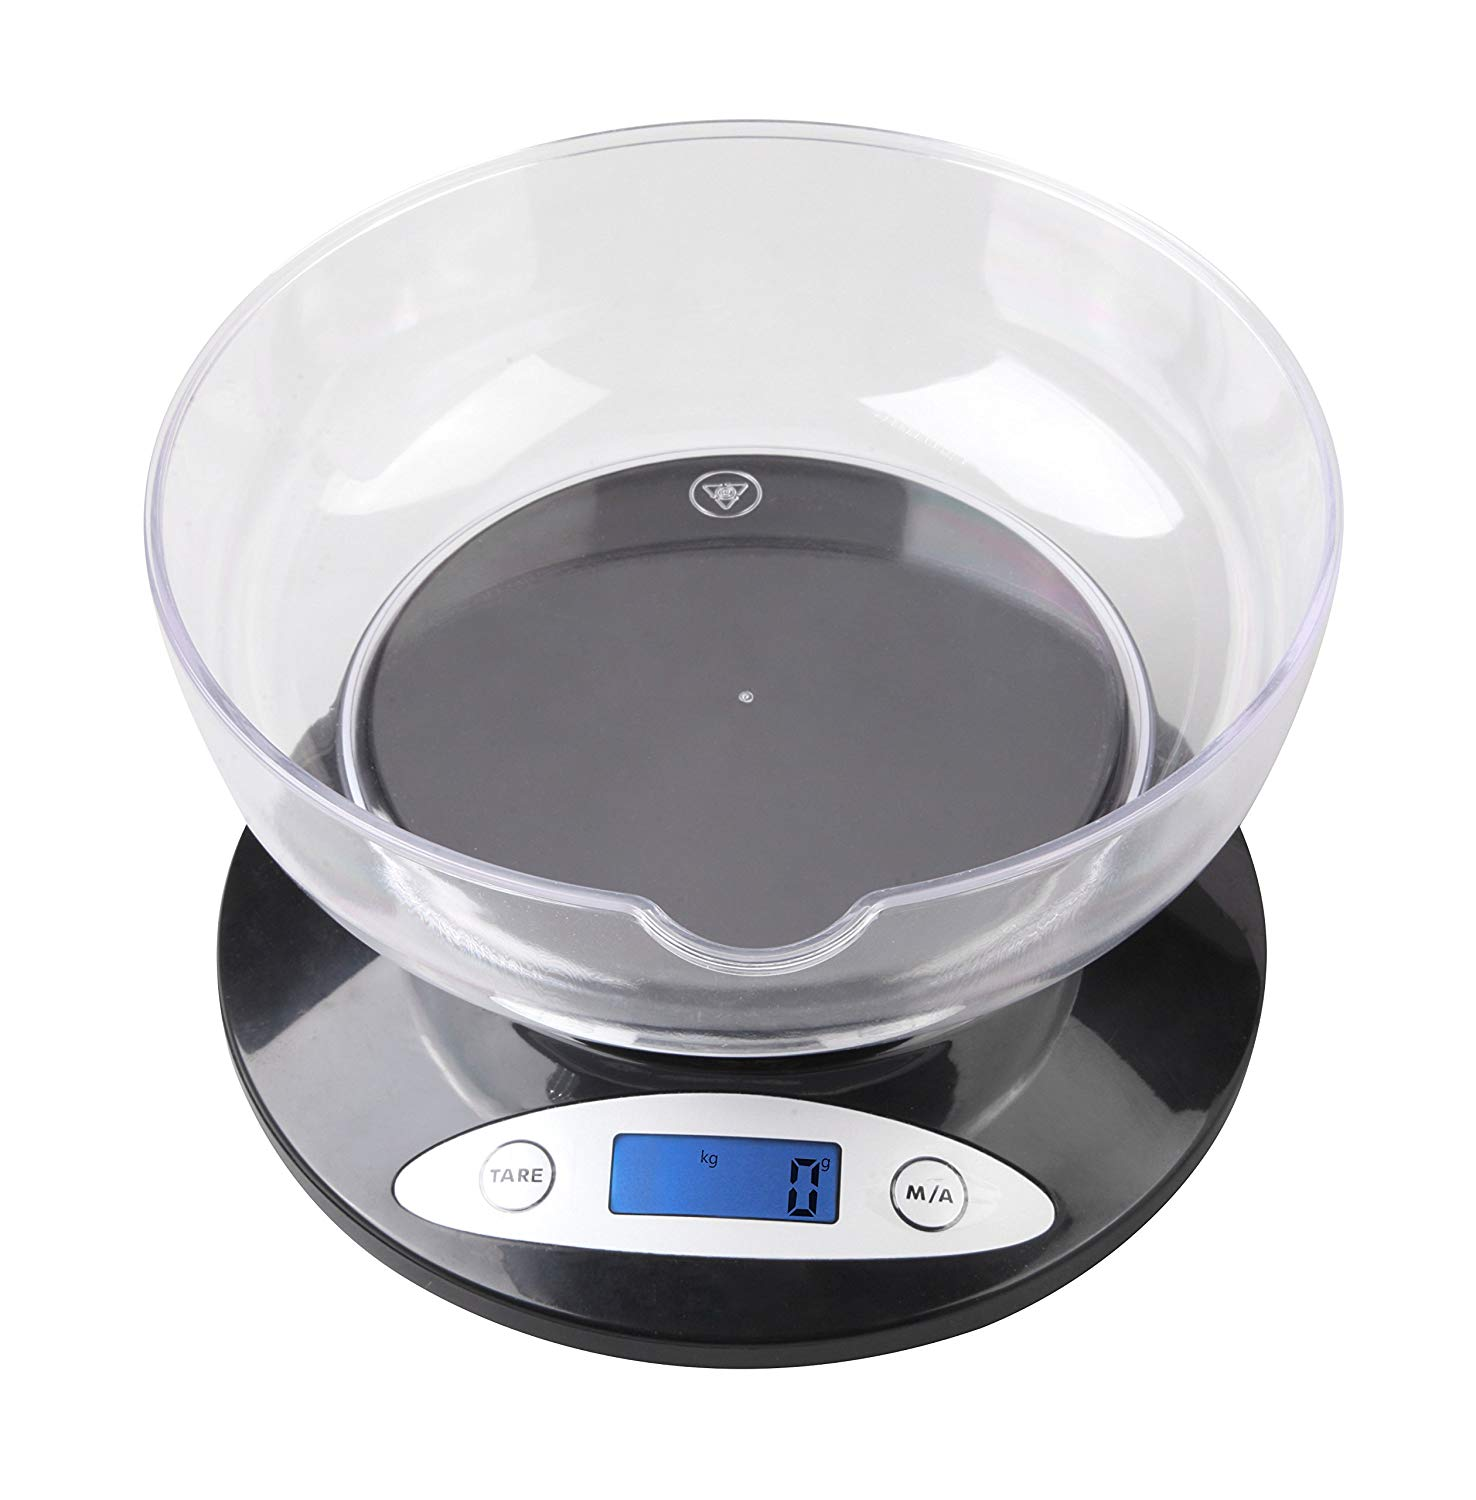 Weighmax digital kitchen scale